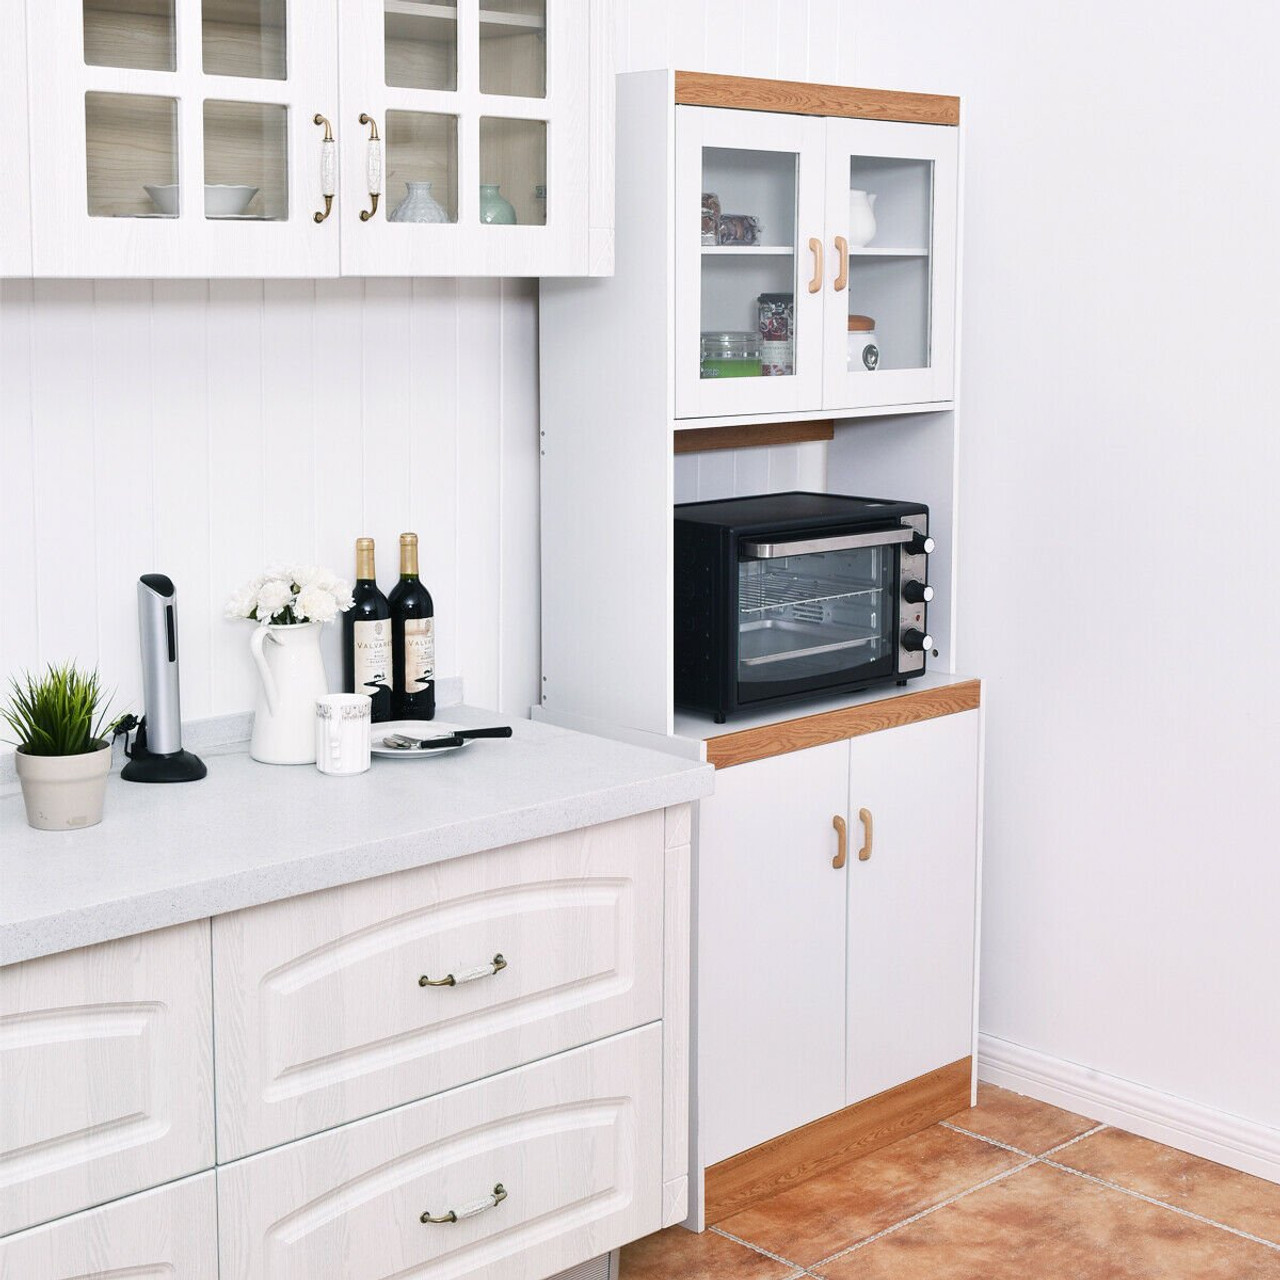 tall shelves microwave cart stand kitchen storage cabinet hw56197